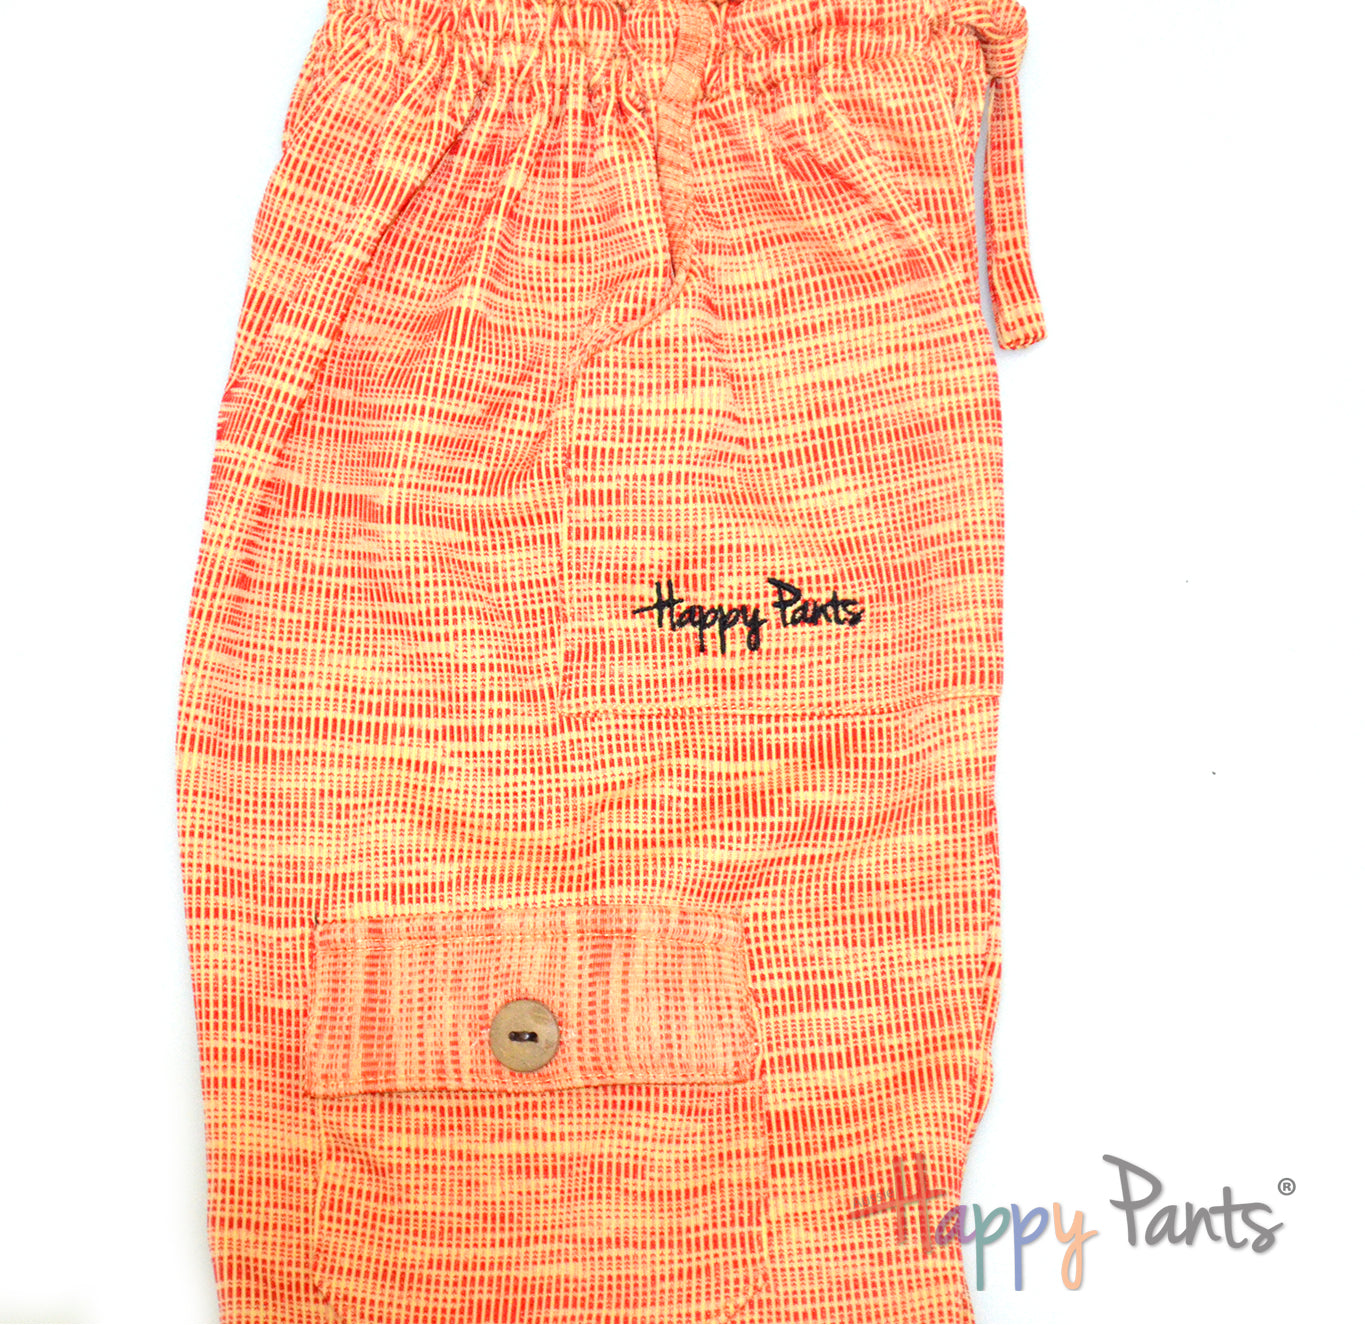 Evening Sunset Kids Boardshorts 3/4 Shorts